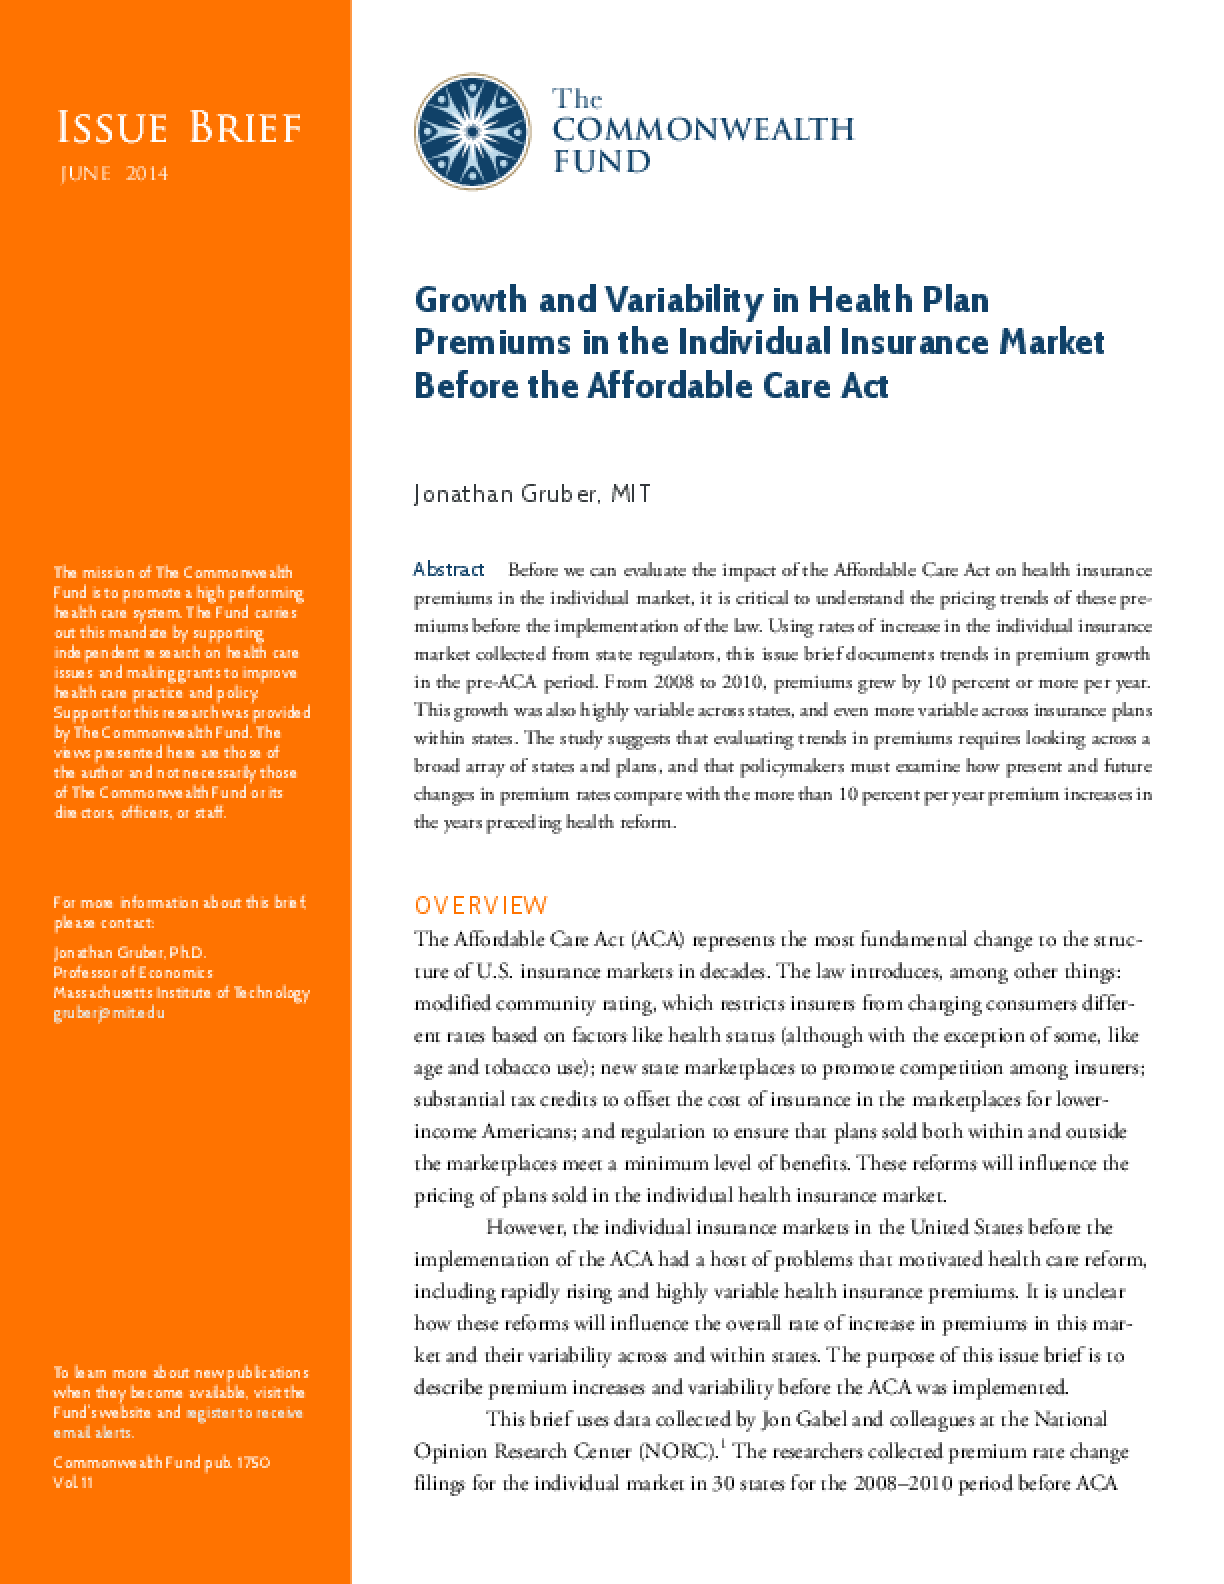 Growth and Variability in Health Plan Premiums in the Individual Insurance Market Before the Affordable Care Act